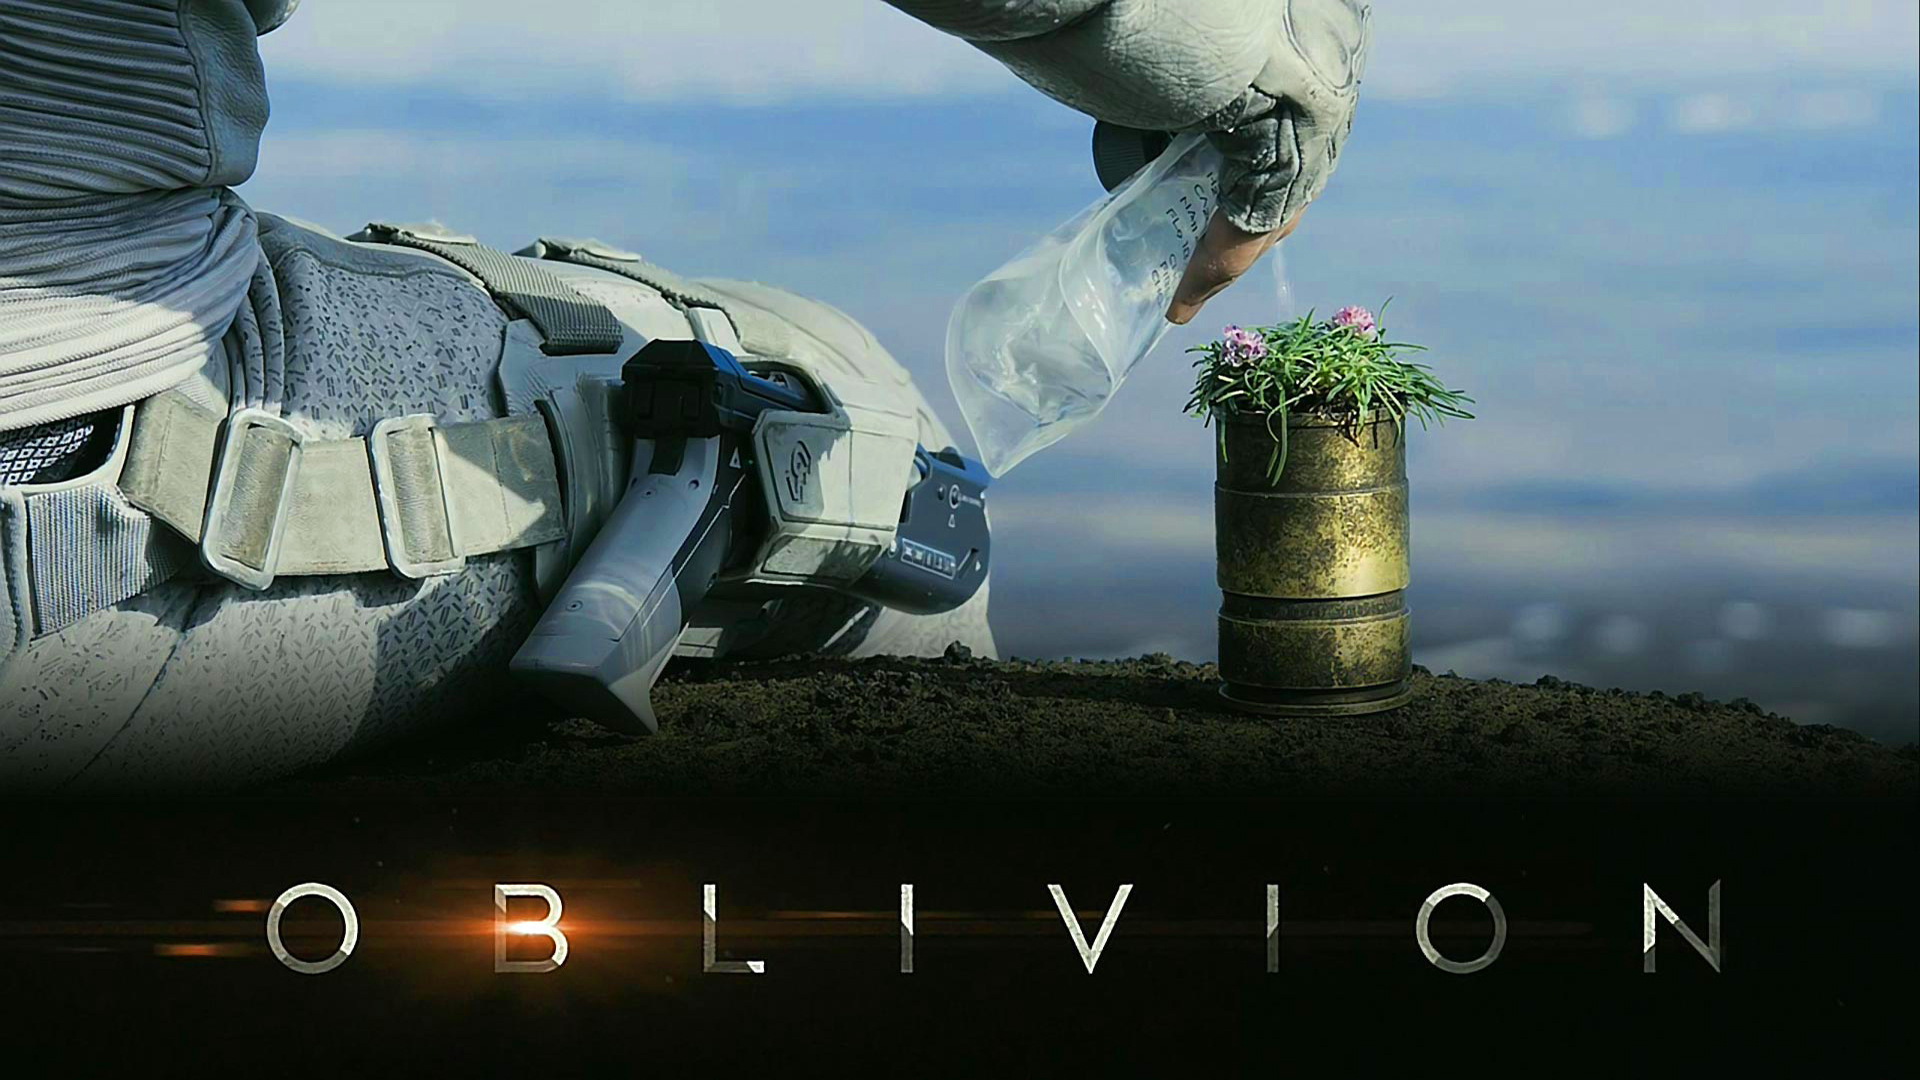 Oblivion wallpapers   SF Wallpaper 1920x1080